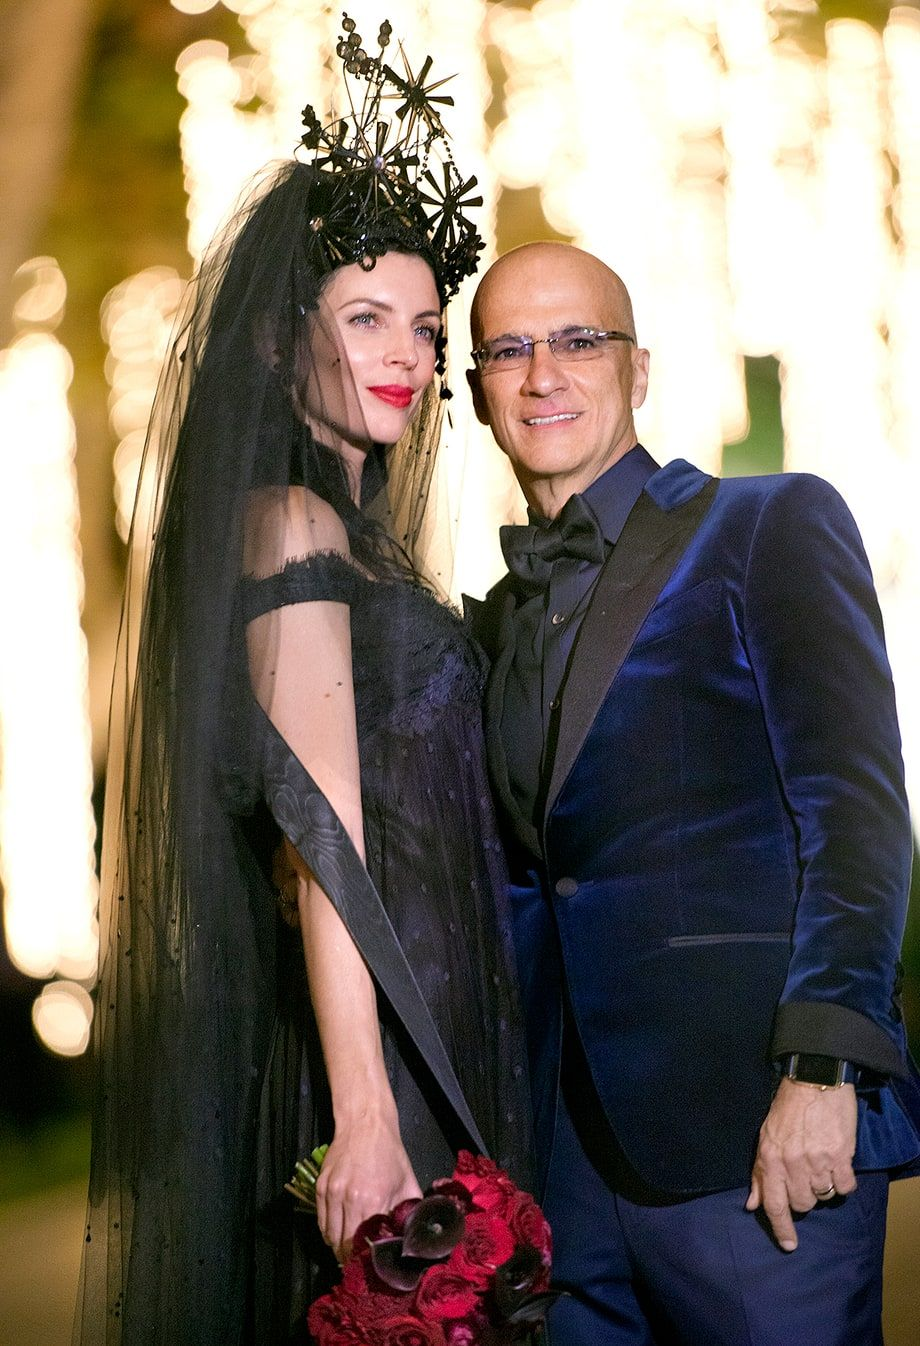 Liberty Ross Jimmy Iovine Reveal Their Wedding Photo Wears An Epic Headpiece And A Vintage Black Gown In This From Her